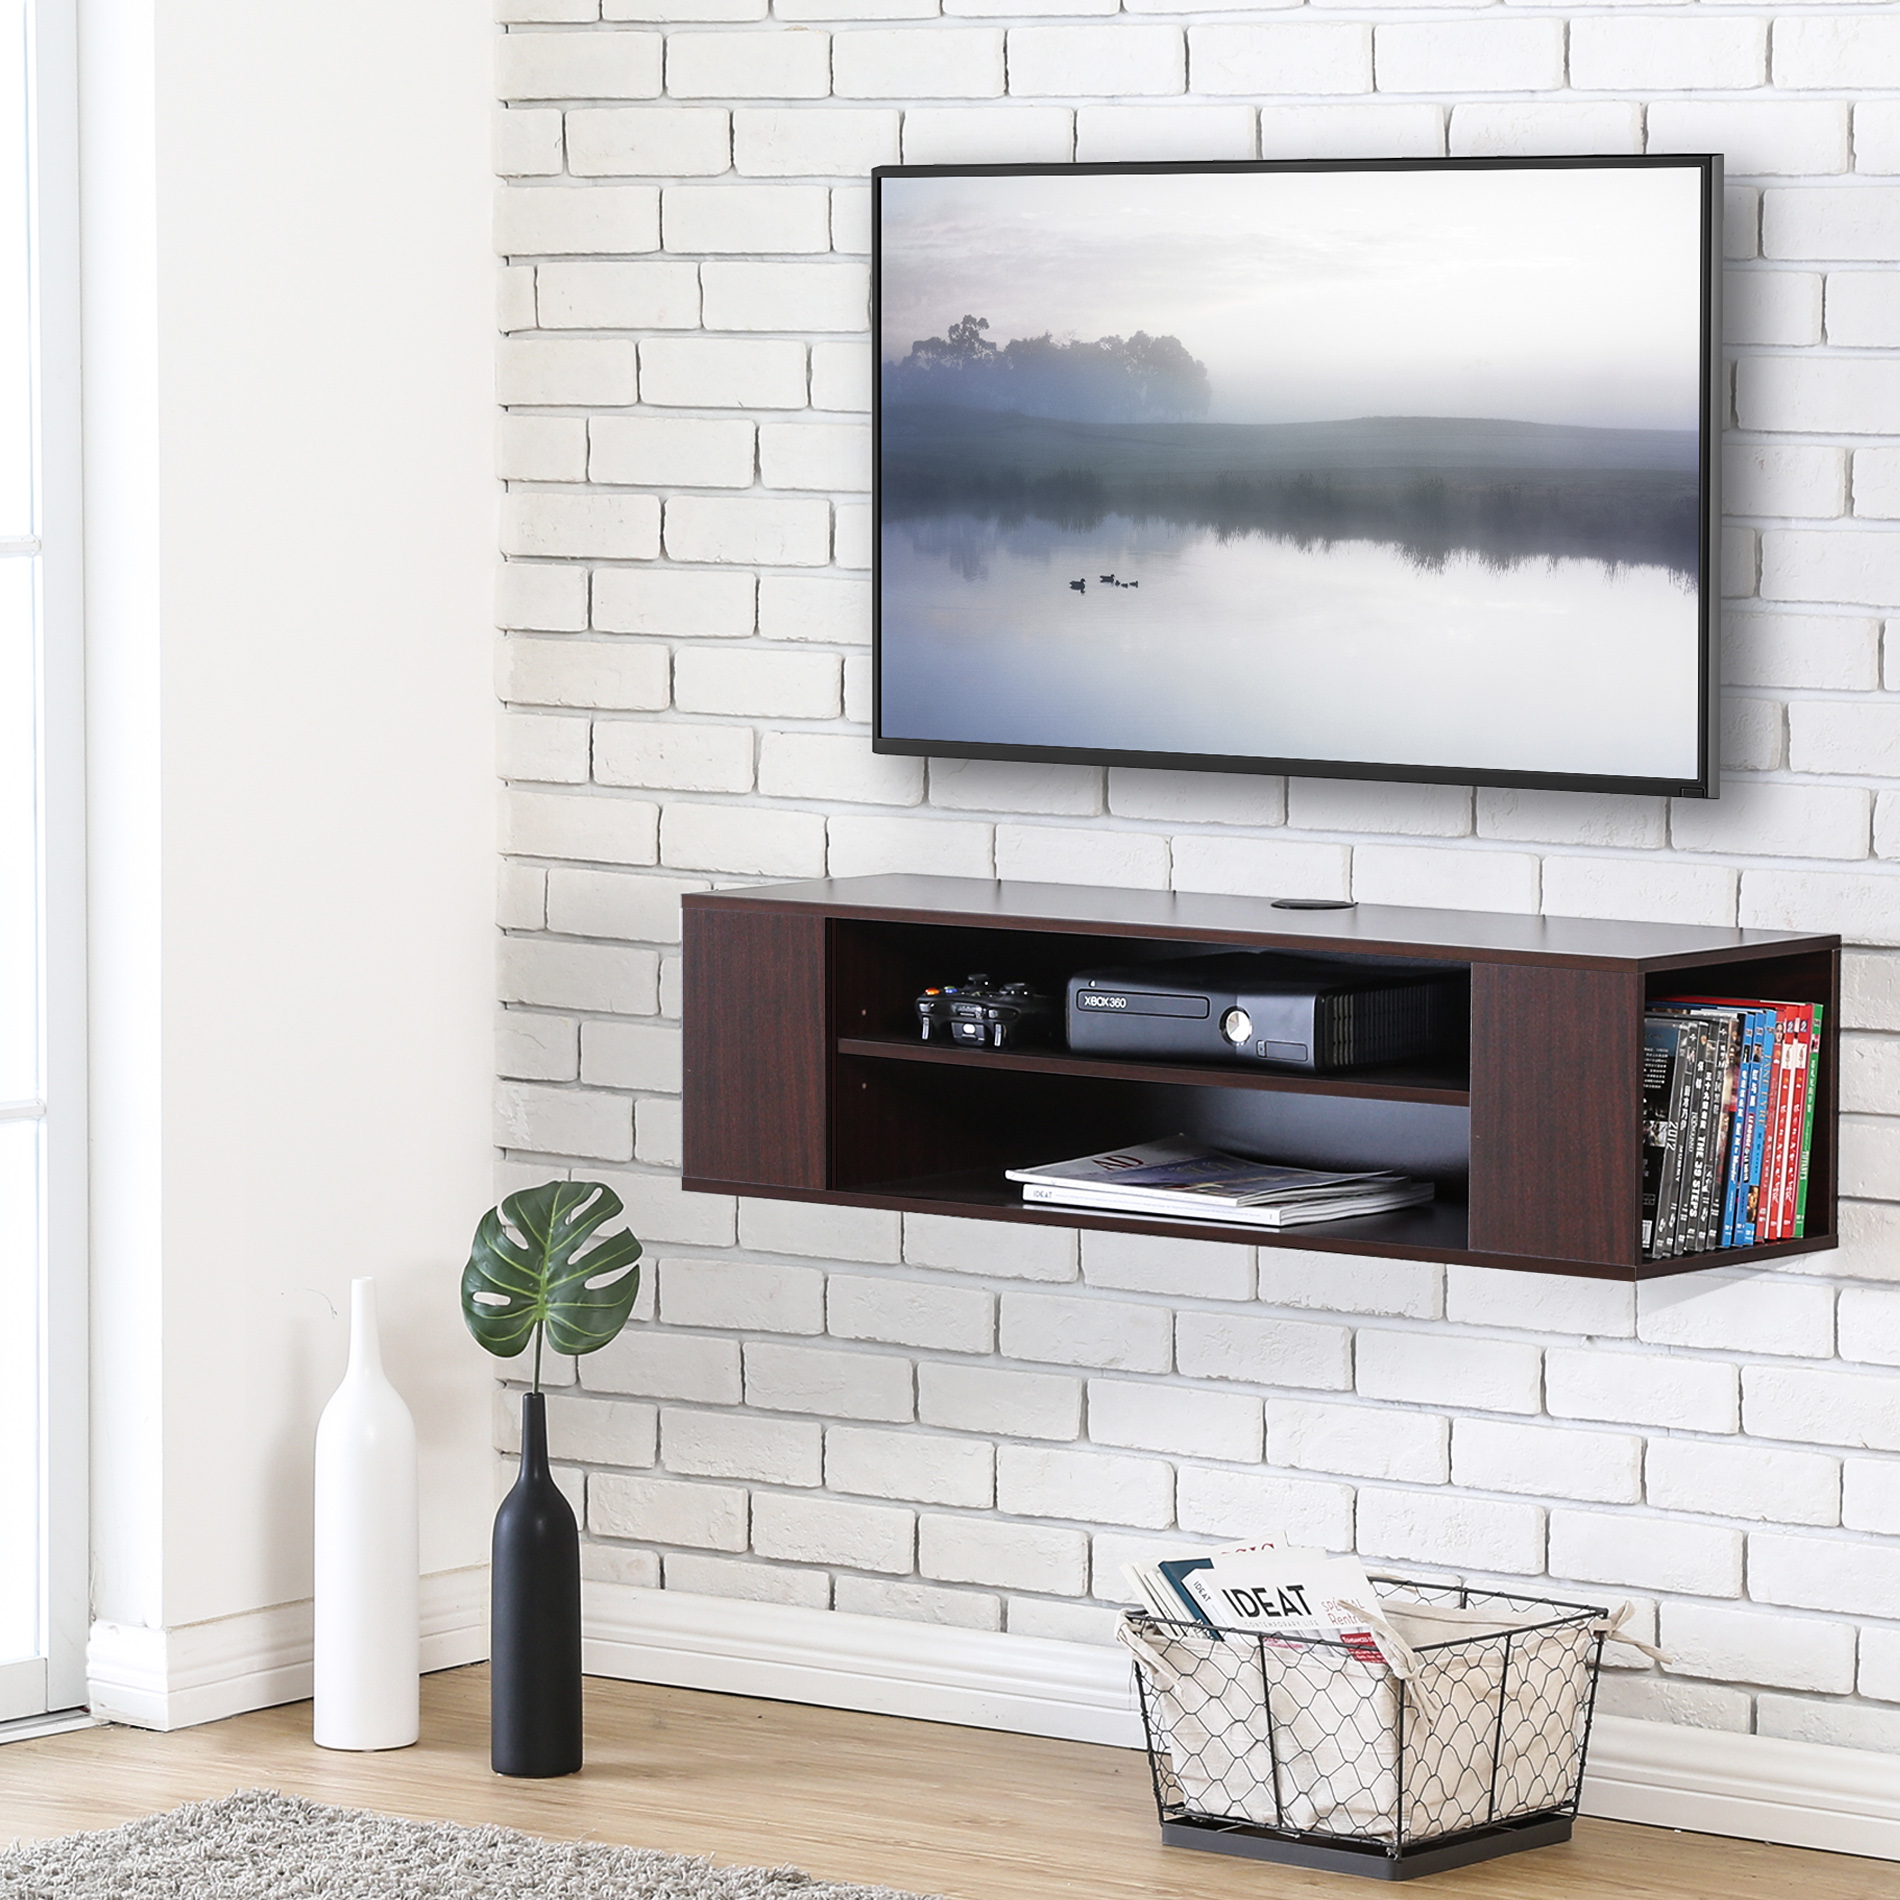 Fitueyes Wall Mounted Media Console Shelf TV Stand Walnut F1DS210001WB